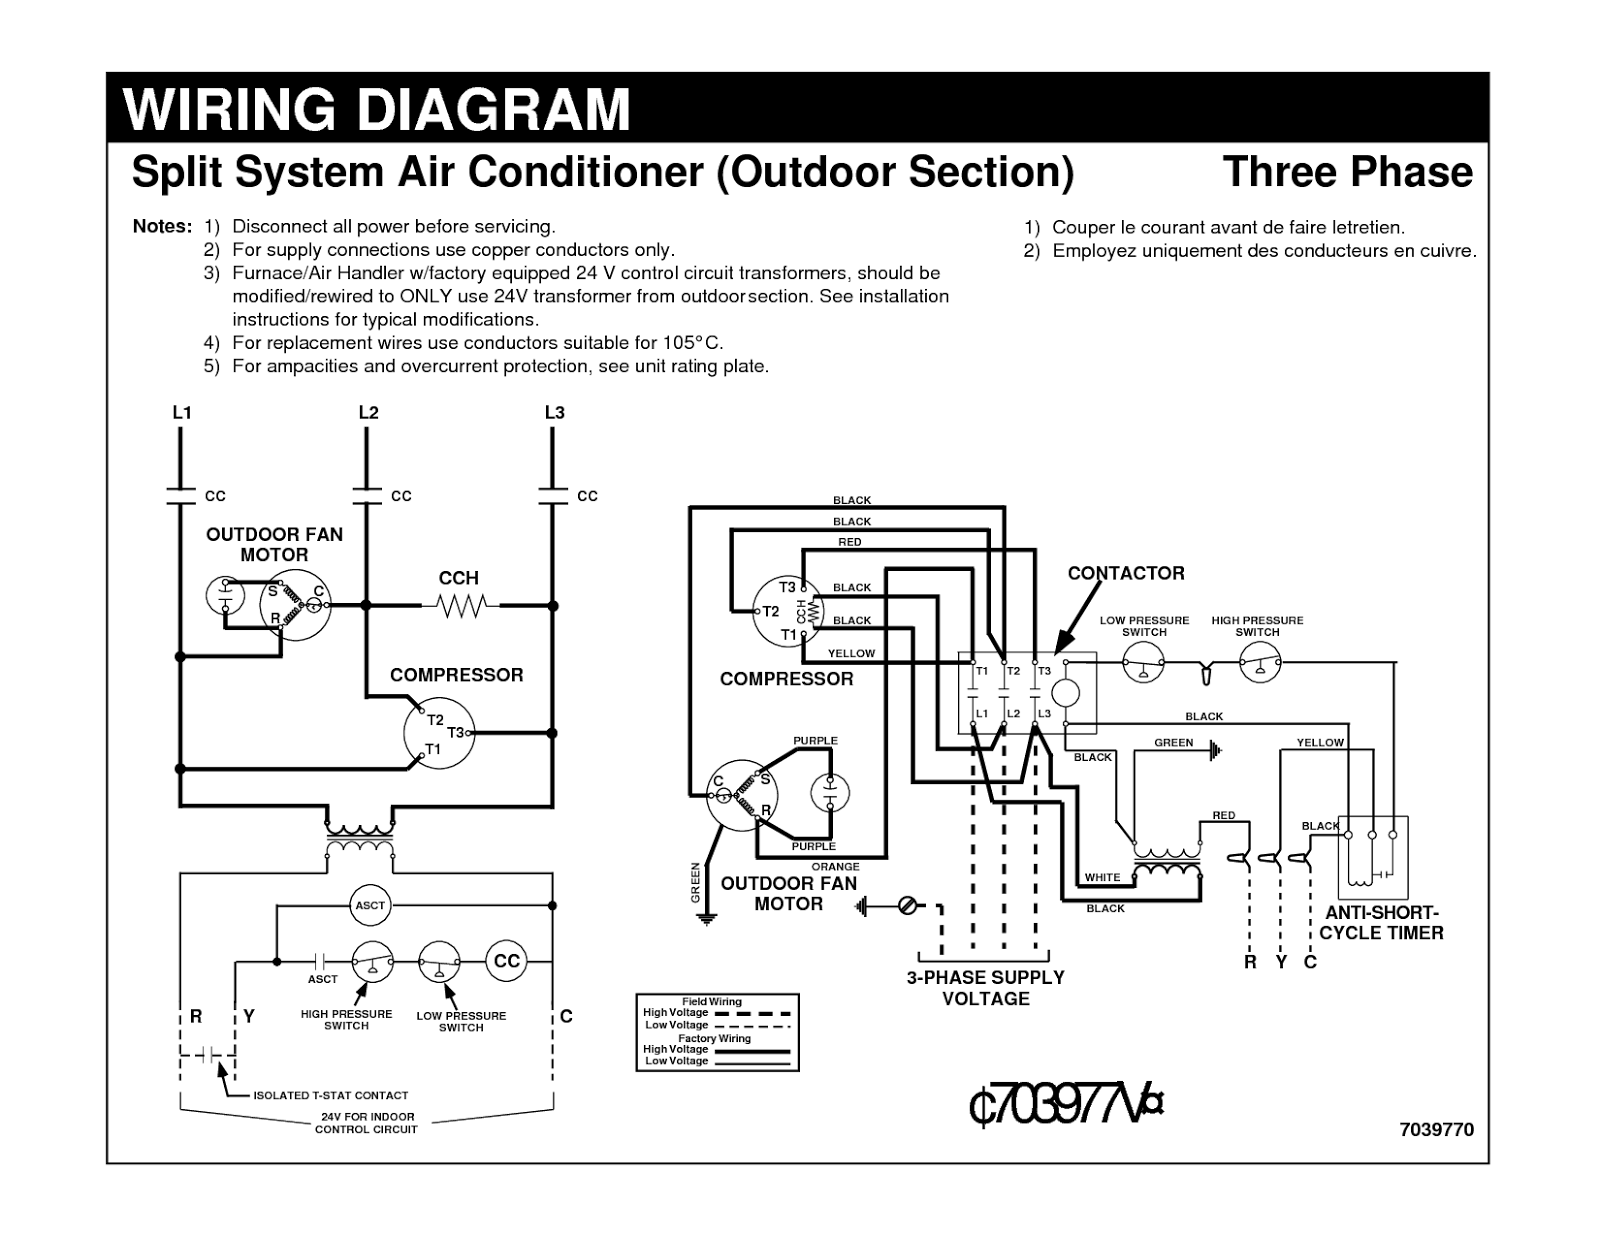 electrical wiring diagrams for air conditioning systems With wiring schematic diagram guide basic thermostat wiring diagram